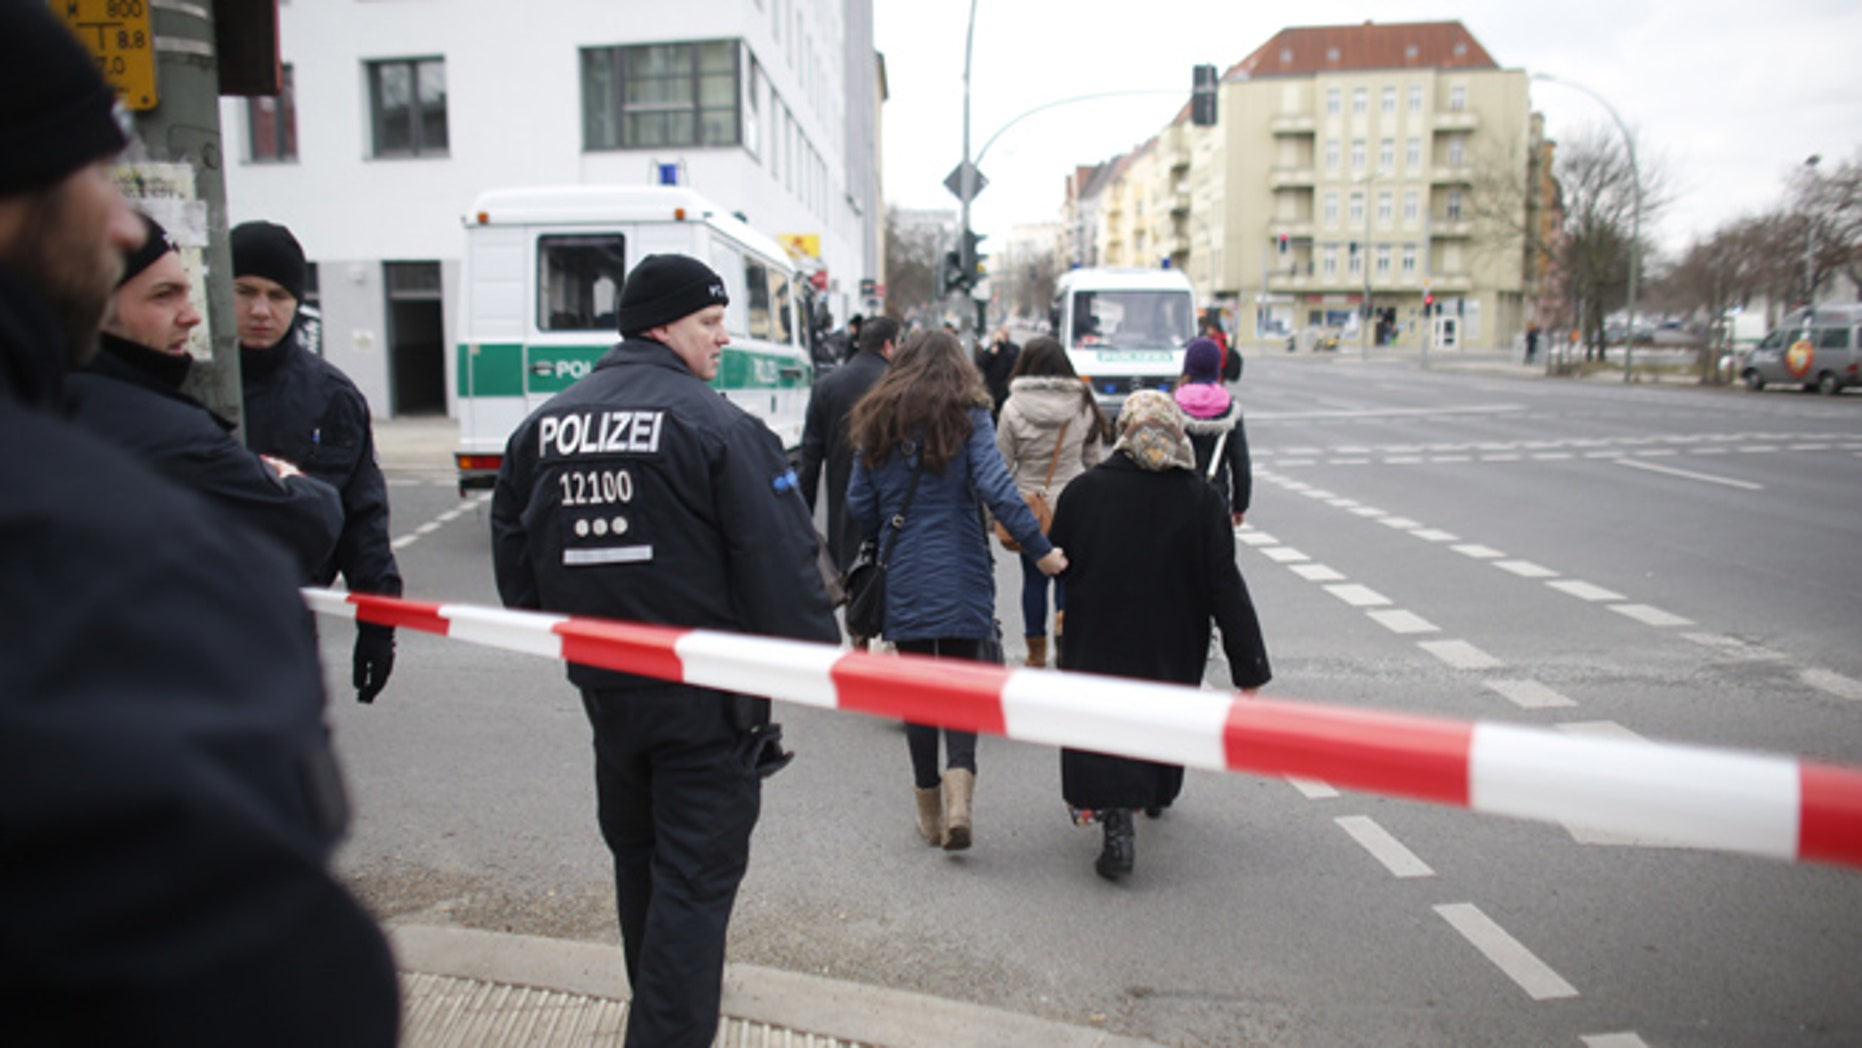 April 3, 2013: Police officers  advise inhabitants to leave an area which had to be evacuated  after a World War II bomb  has been  found  at a building site near  Berlin's main train station  in Berlin. Police spokesman Thomas Neuendorf said the 220-pound bomb was found during construction work on Tuesday evening.